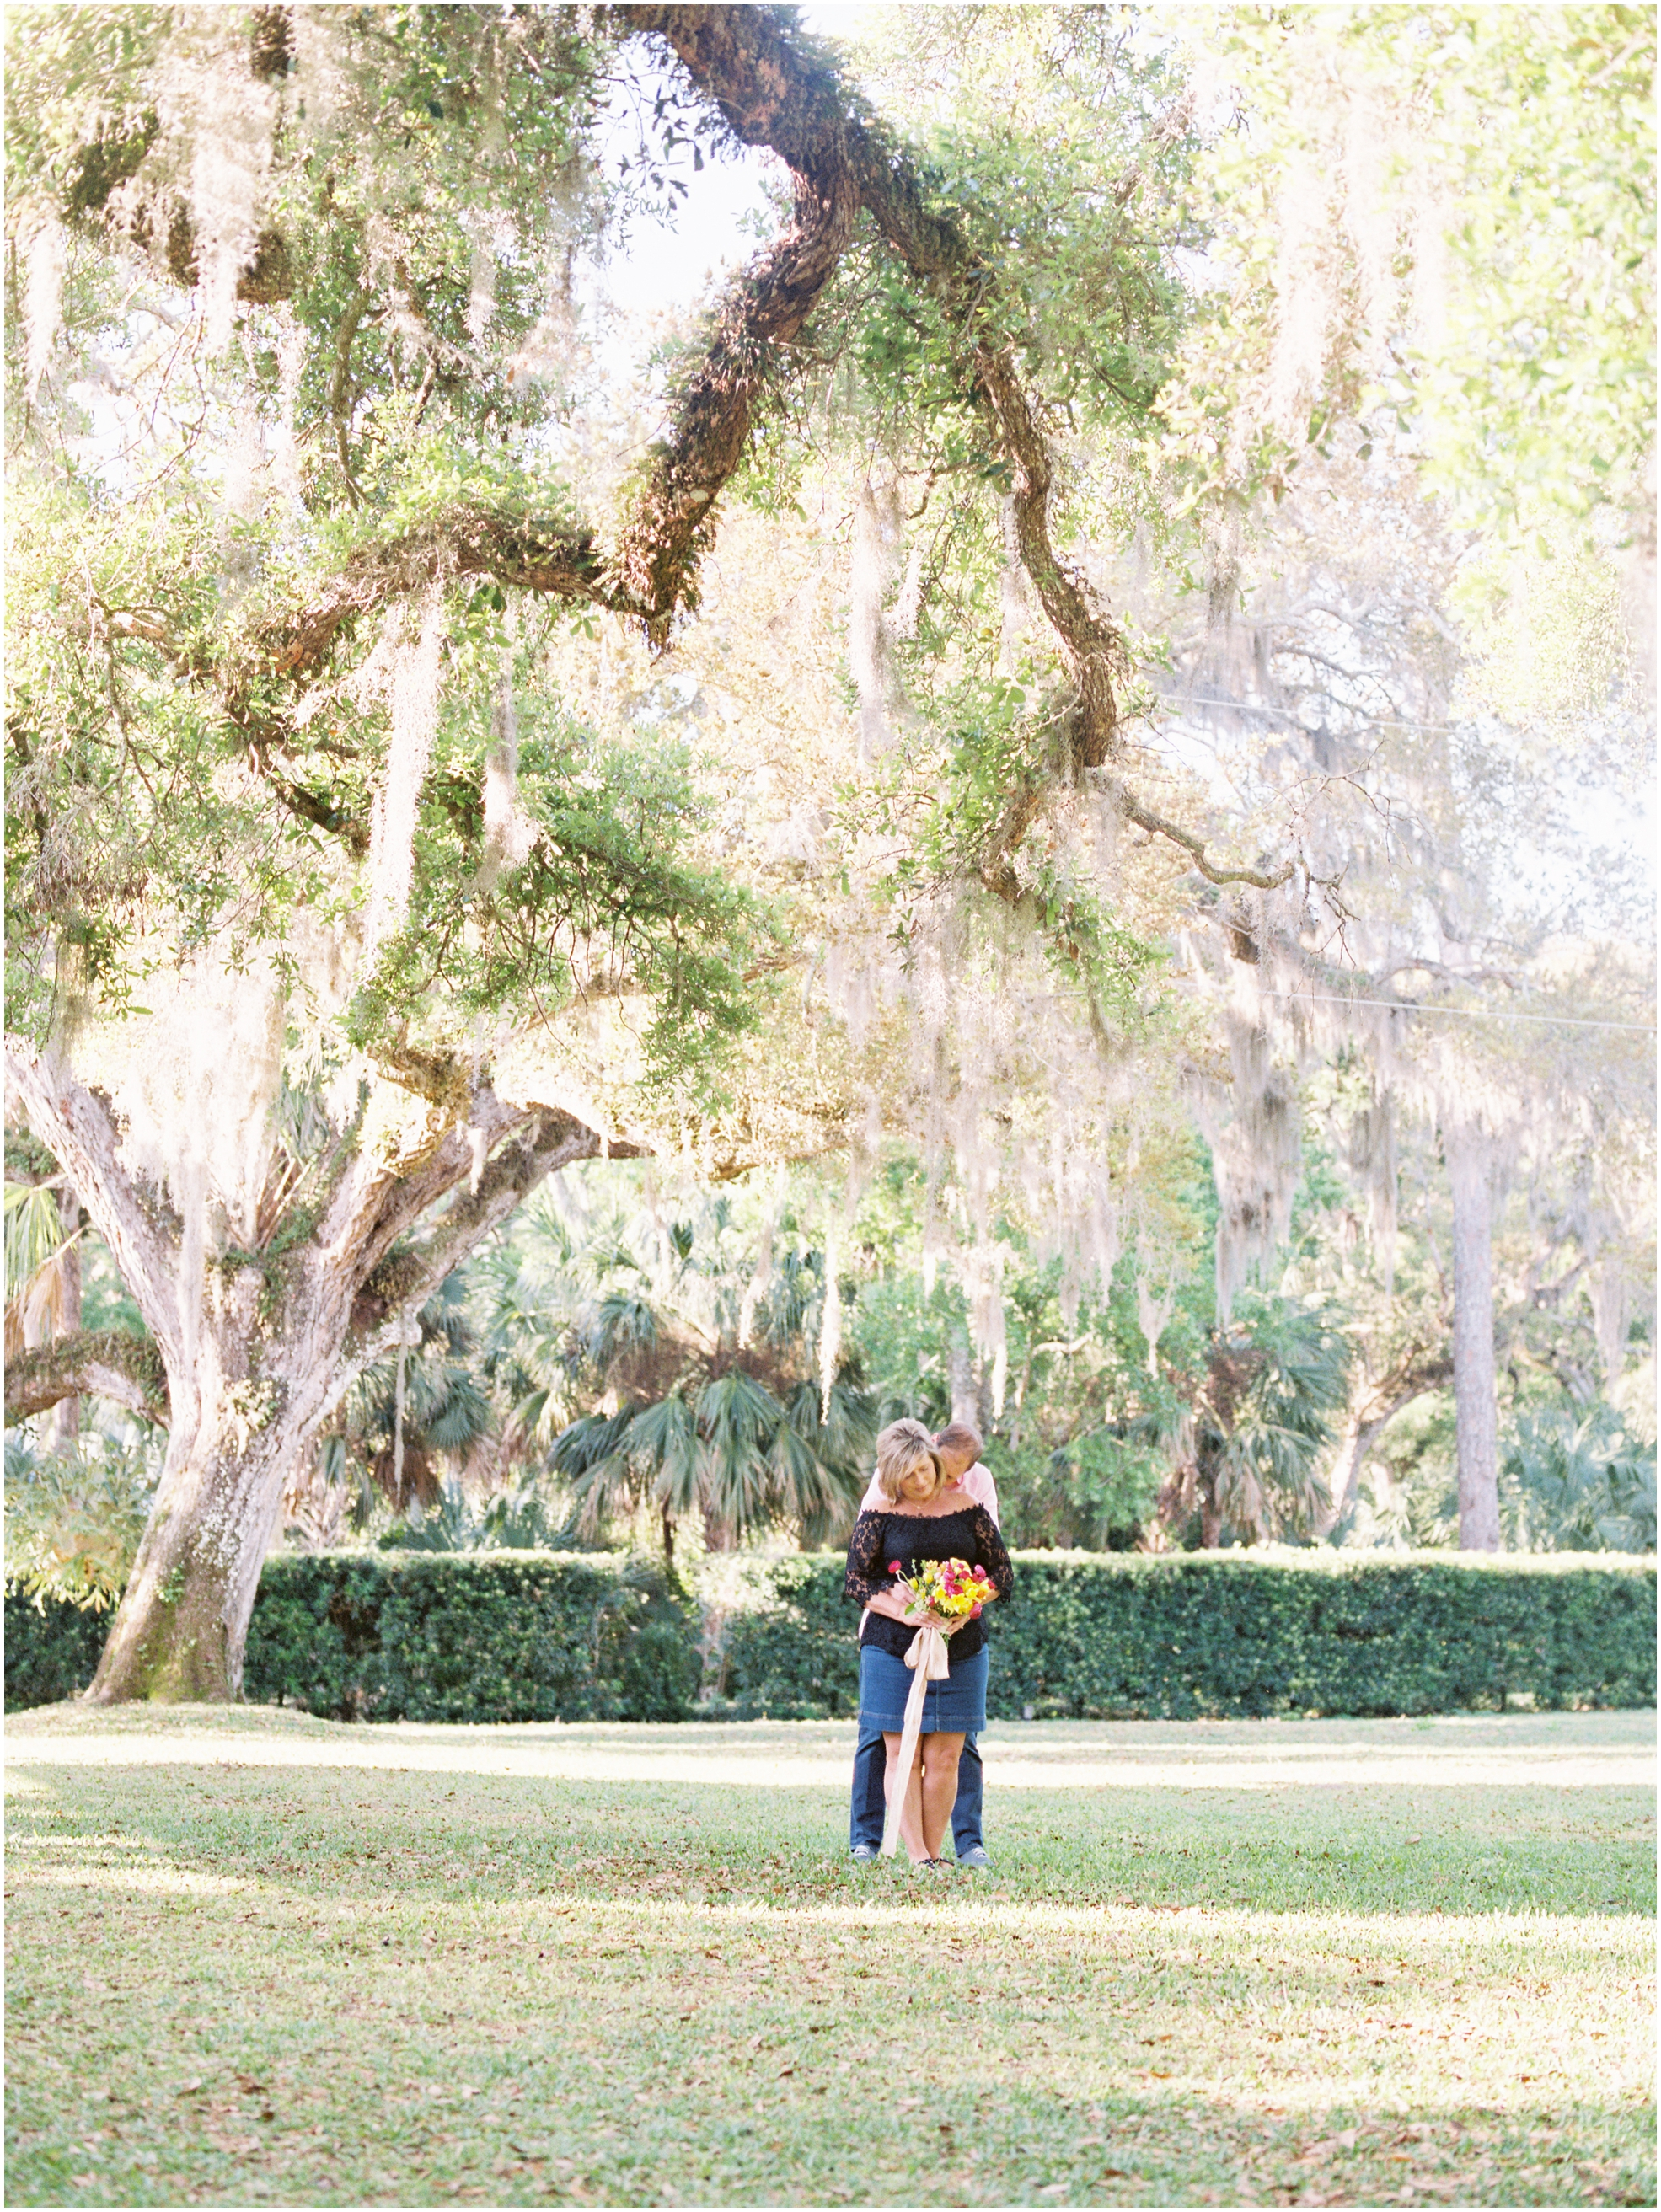 Lisa Silva Photography- Jacksonville, St. Augustine, Amelia Island, Ponte Vedra Beach, North East Florida Fine Art Film Photographer- Anniversary Session at Washington Oaks in Palm Coast, Florida_0033.jpg